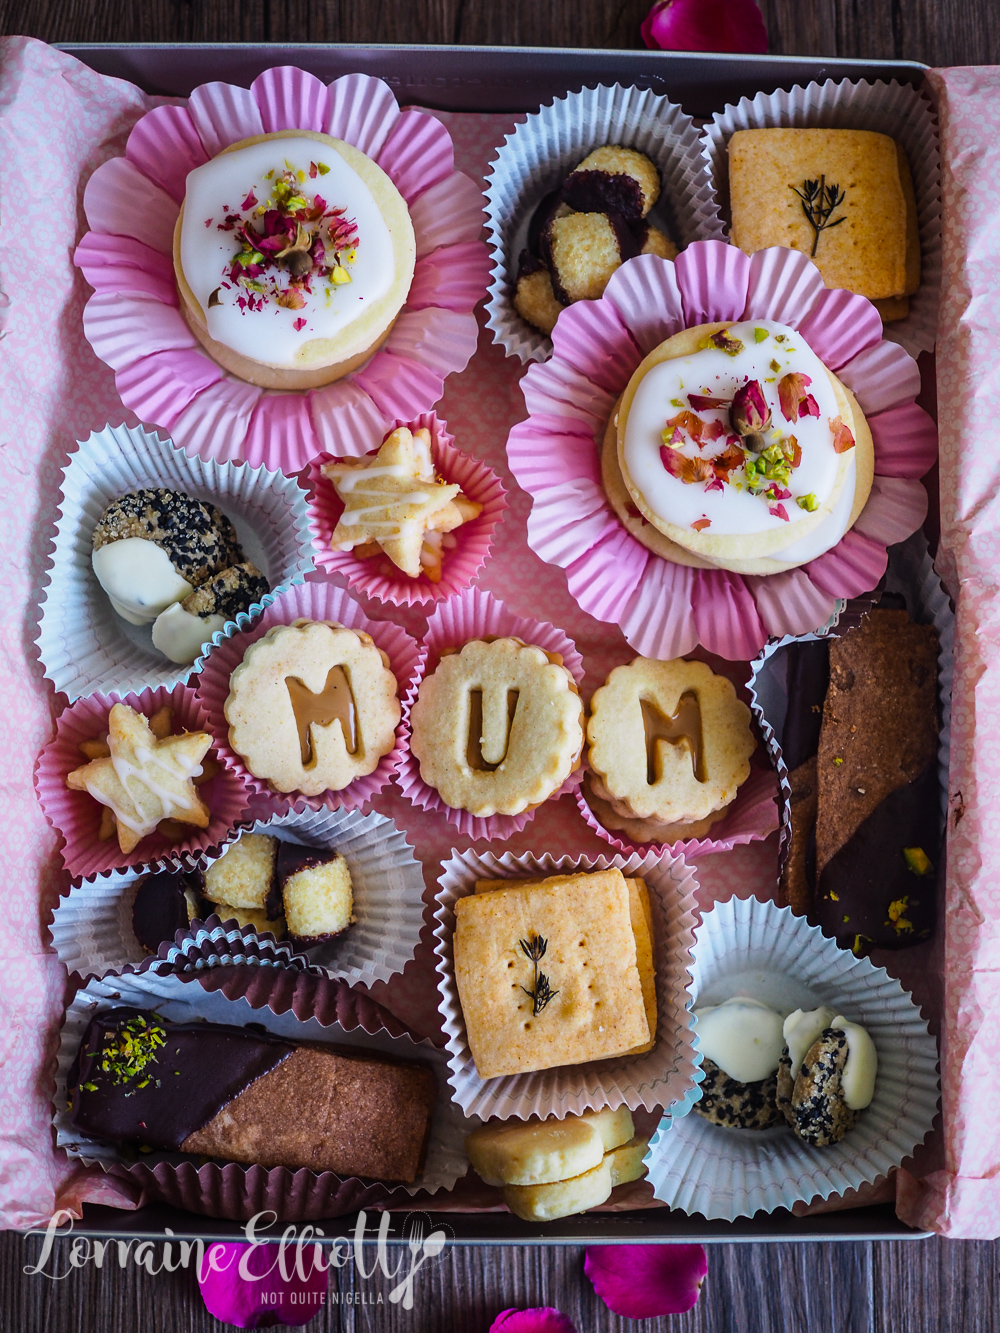 Top 5 Mother's Day Edible Gifts